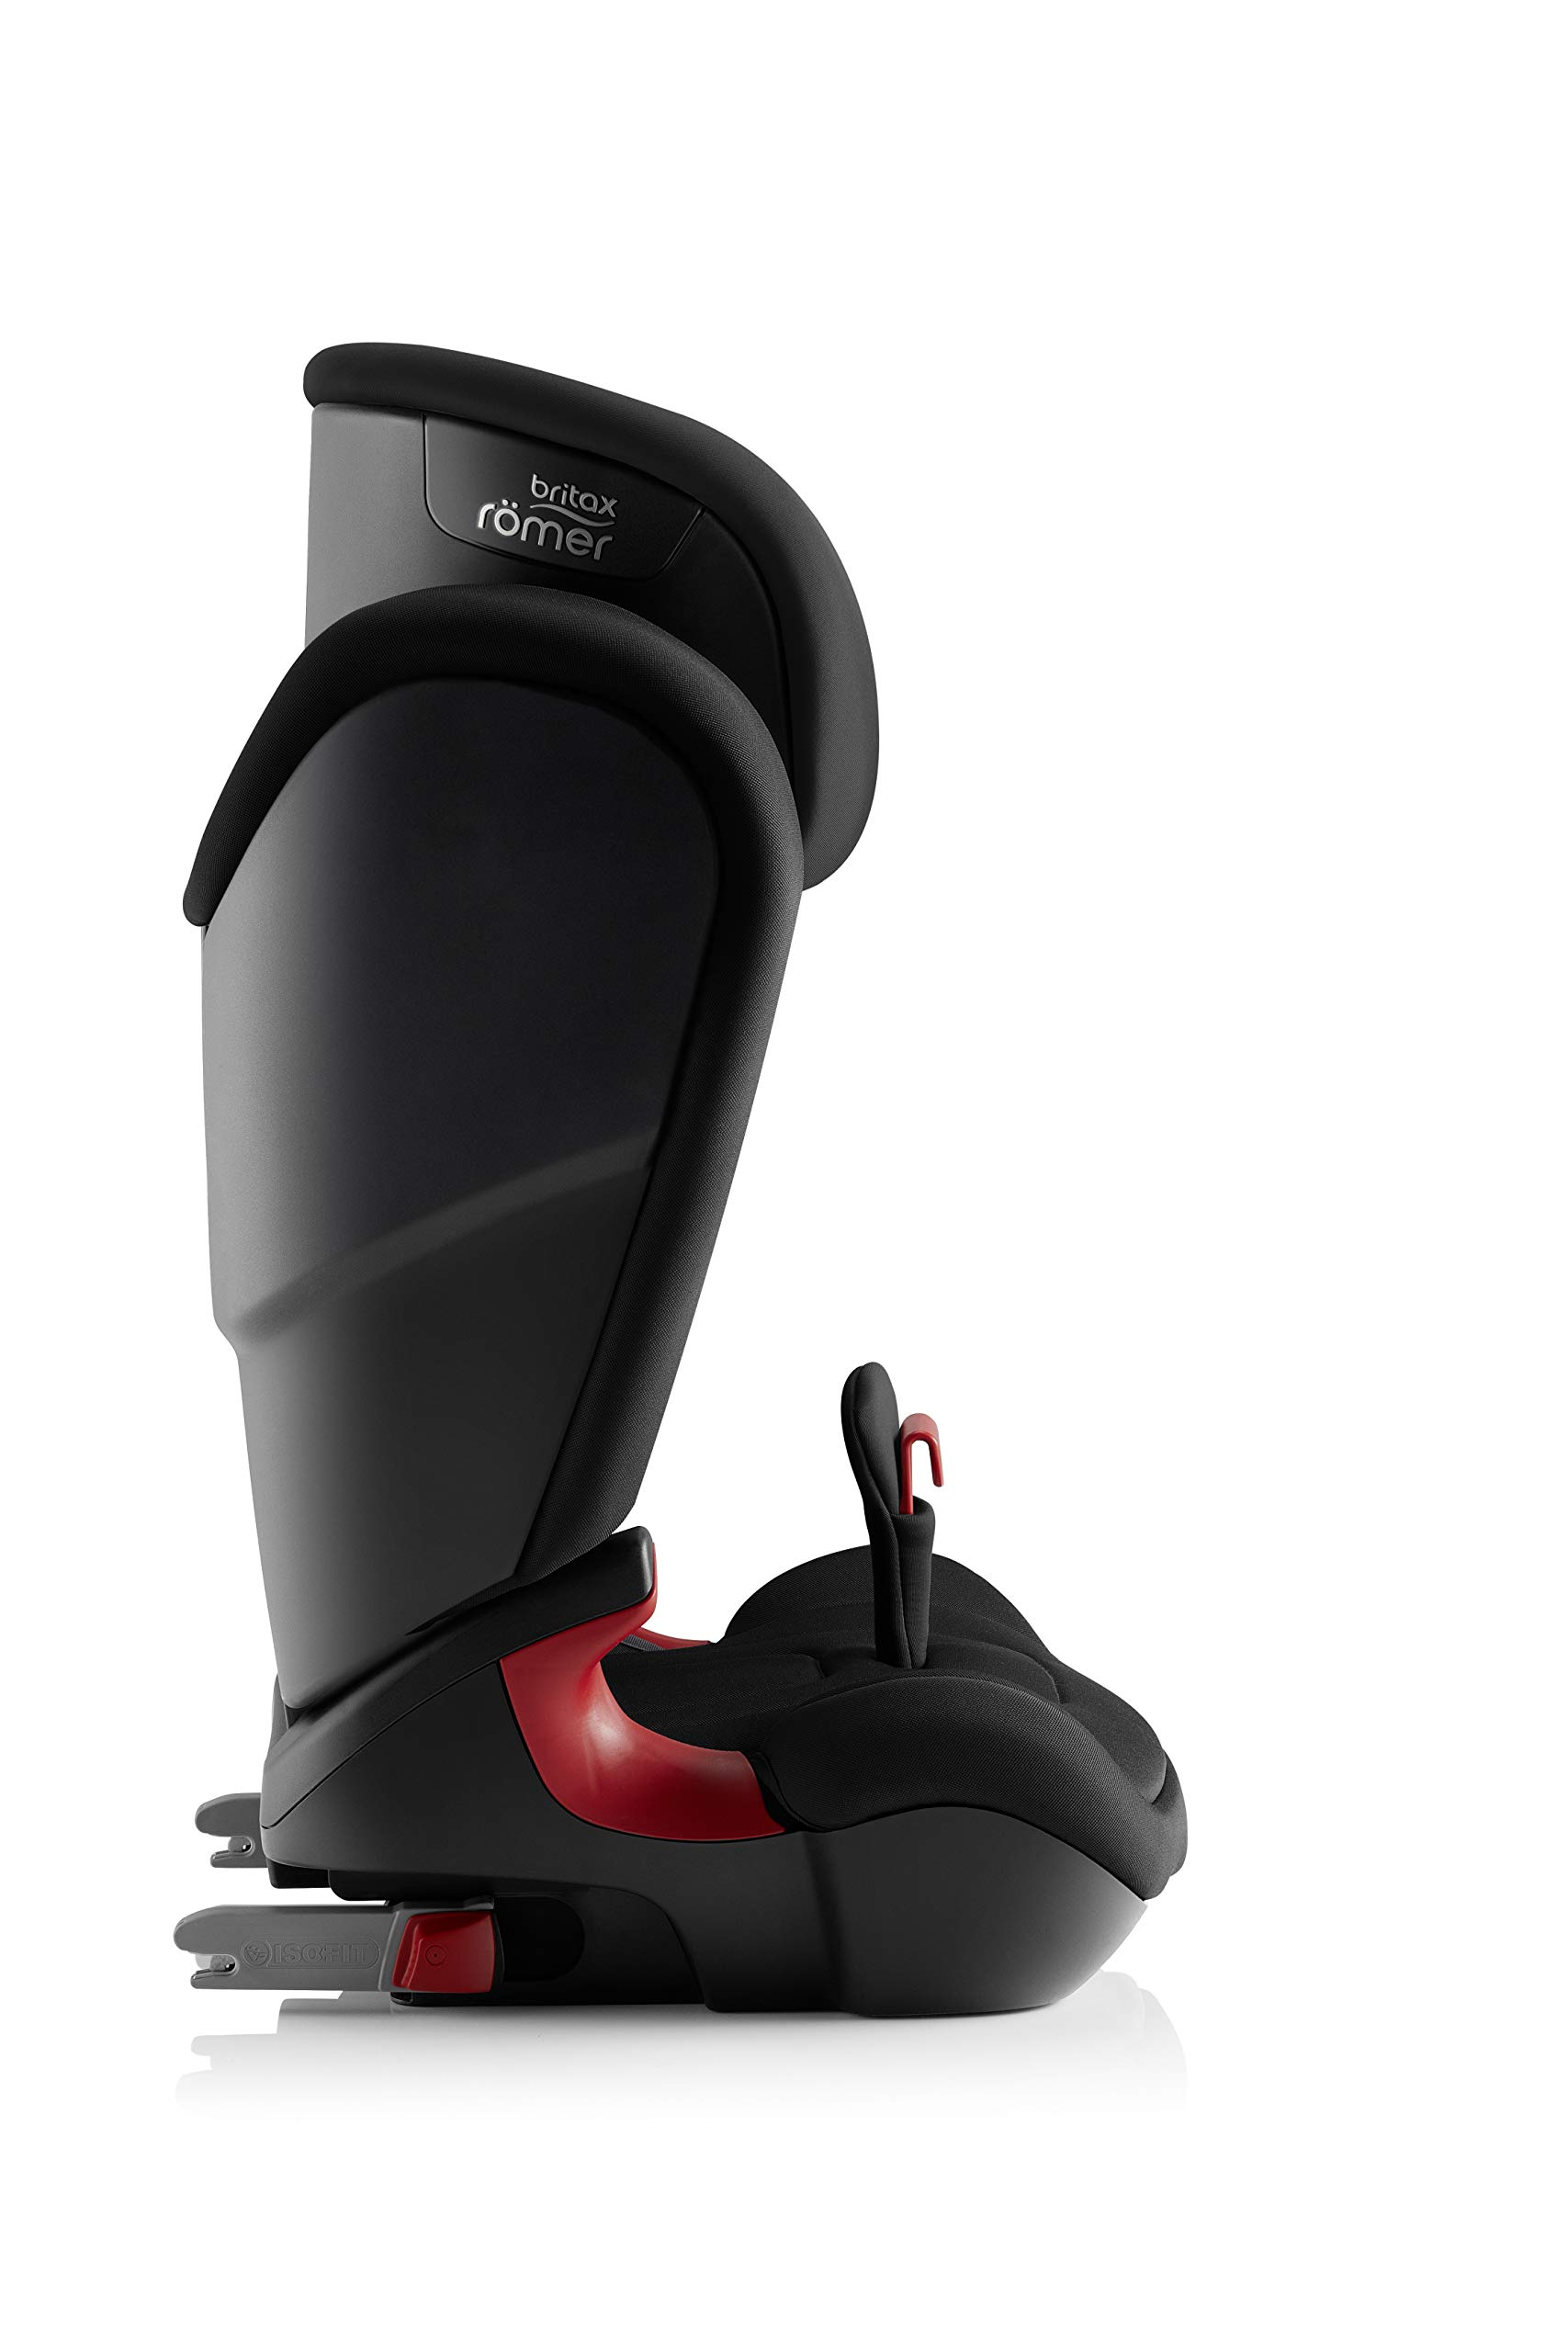 Britax Römer car seat 15-36 kg, KIDFIX 2 R Isofix group 2/3, Cosmos Black Britax Römer Secure guard - helps to protect your child's delicate abdominal area by adding an extra - a 4th - contact point to the 3-point seat belt. High back booster - protects your child in 3 ways: provides head to hip protection; belt guides provide correct positioning of the seat belt and the padded headrest provides safety and comfort. Easy adjustable v-shaped backrest - designed to give optimum support to your growing child, the v-shaped backrest provides more space for their back and shoulders. 7